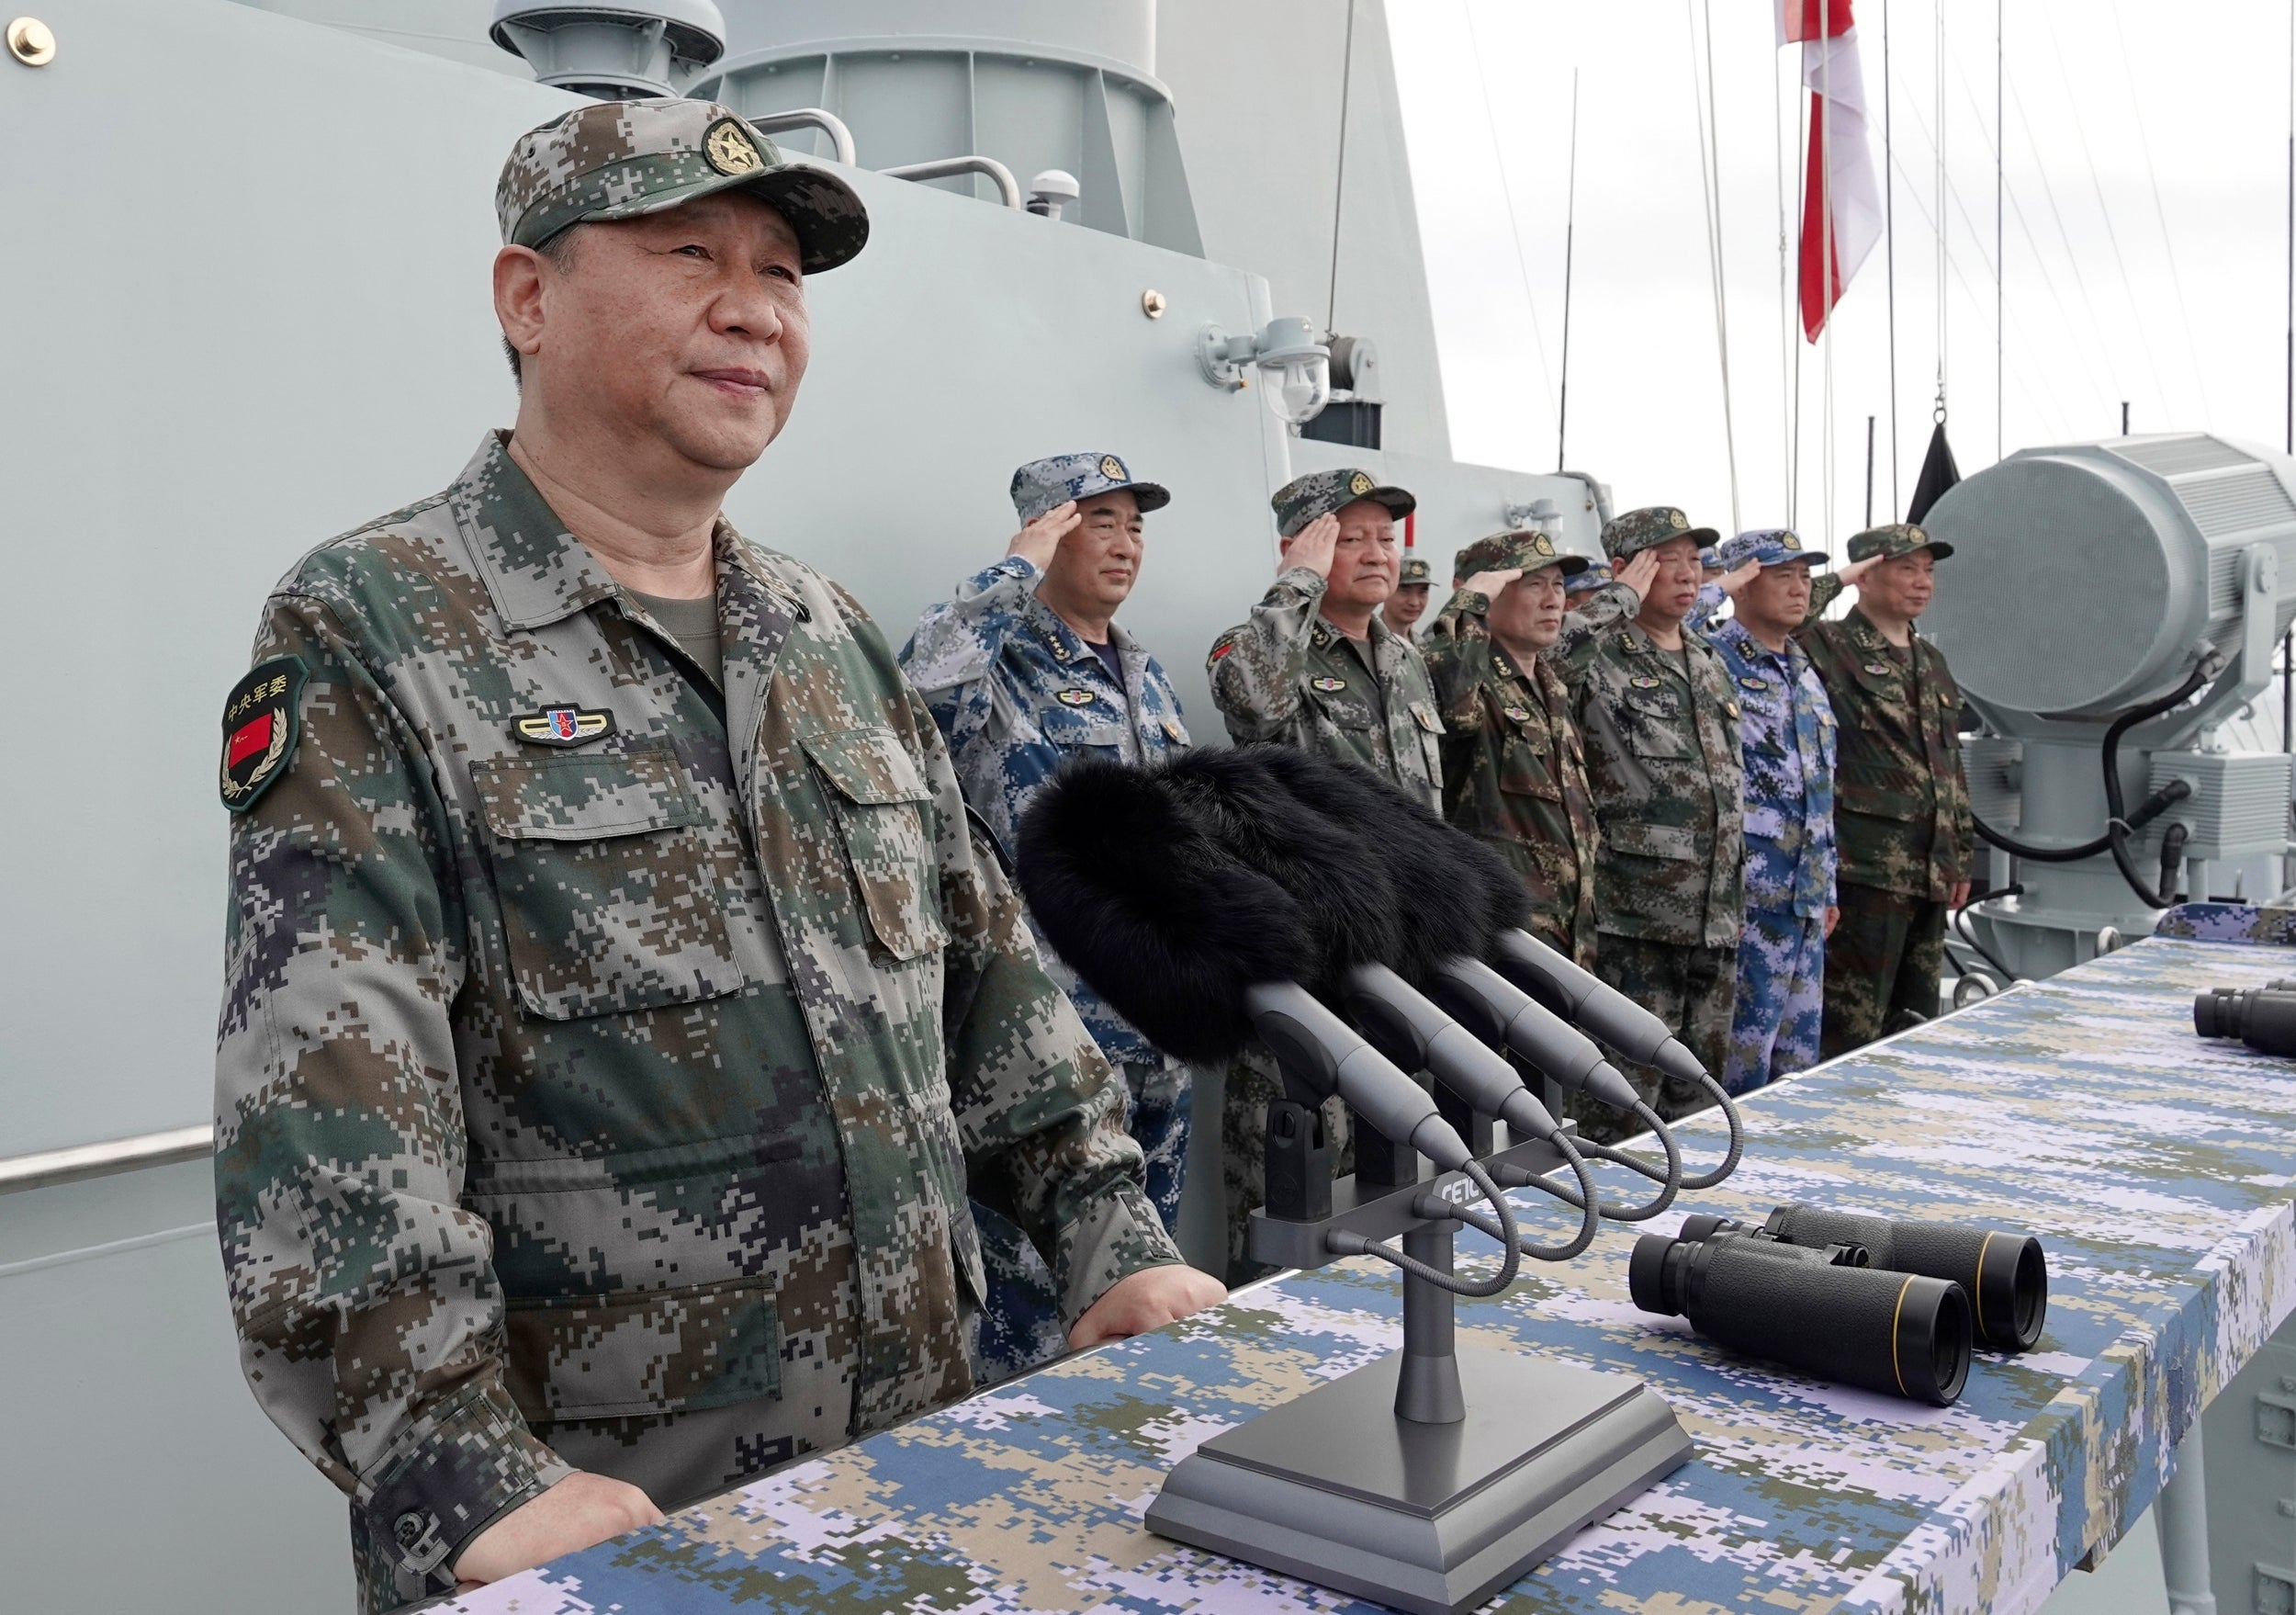 China 'ready to go to war' if Taiwan tries to gain independence, major defence ministry report says